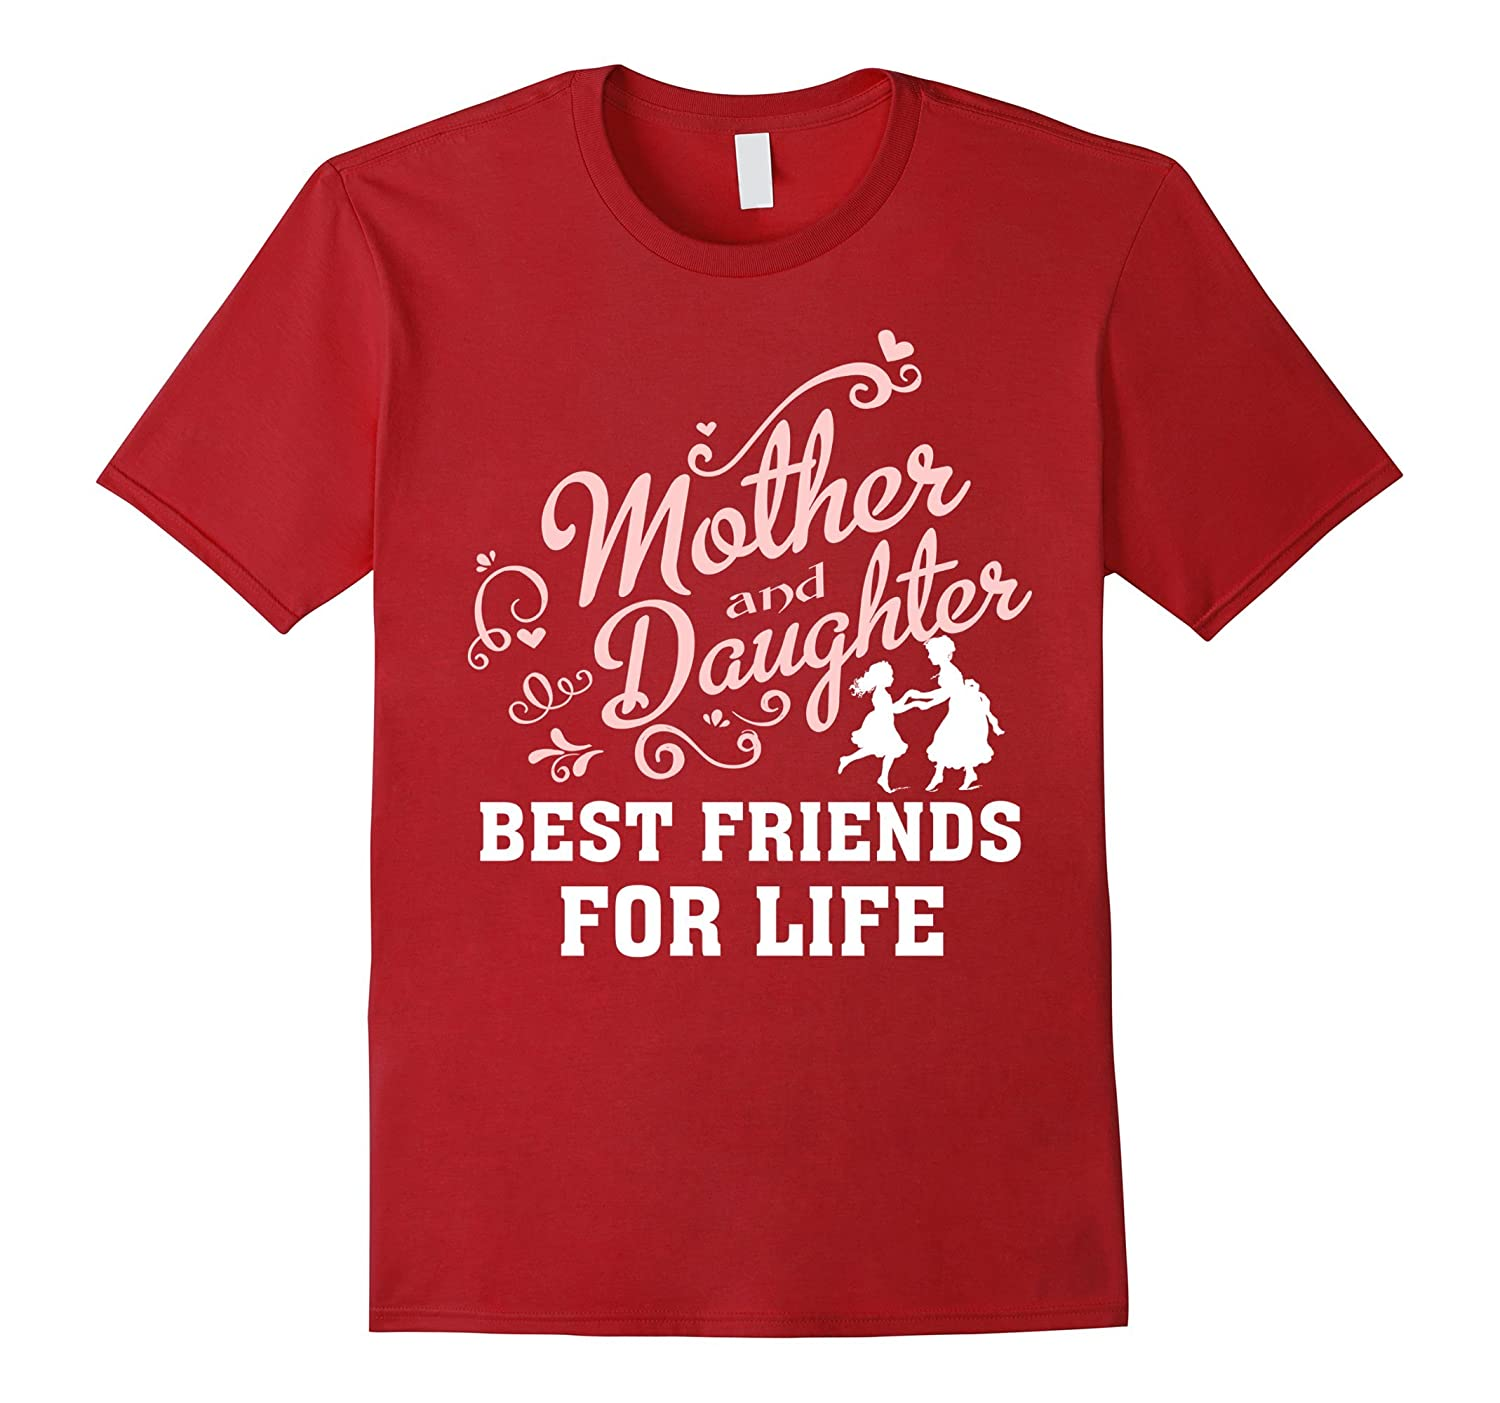 Funny Shirts Mothers Day Gifts For Mom Grandma From Daughter-TH